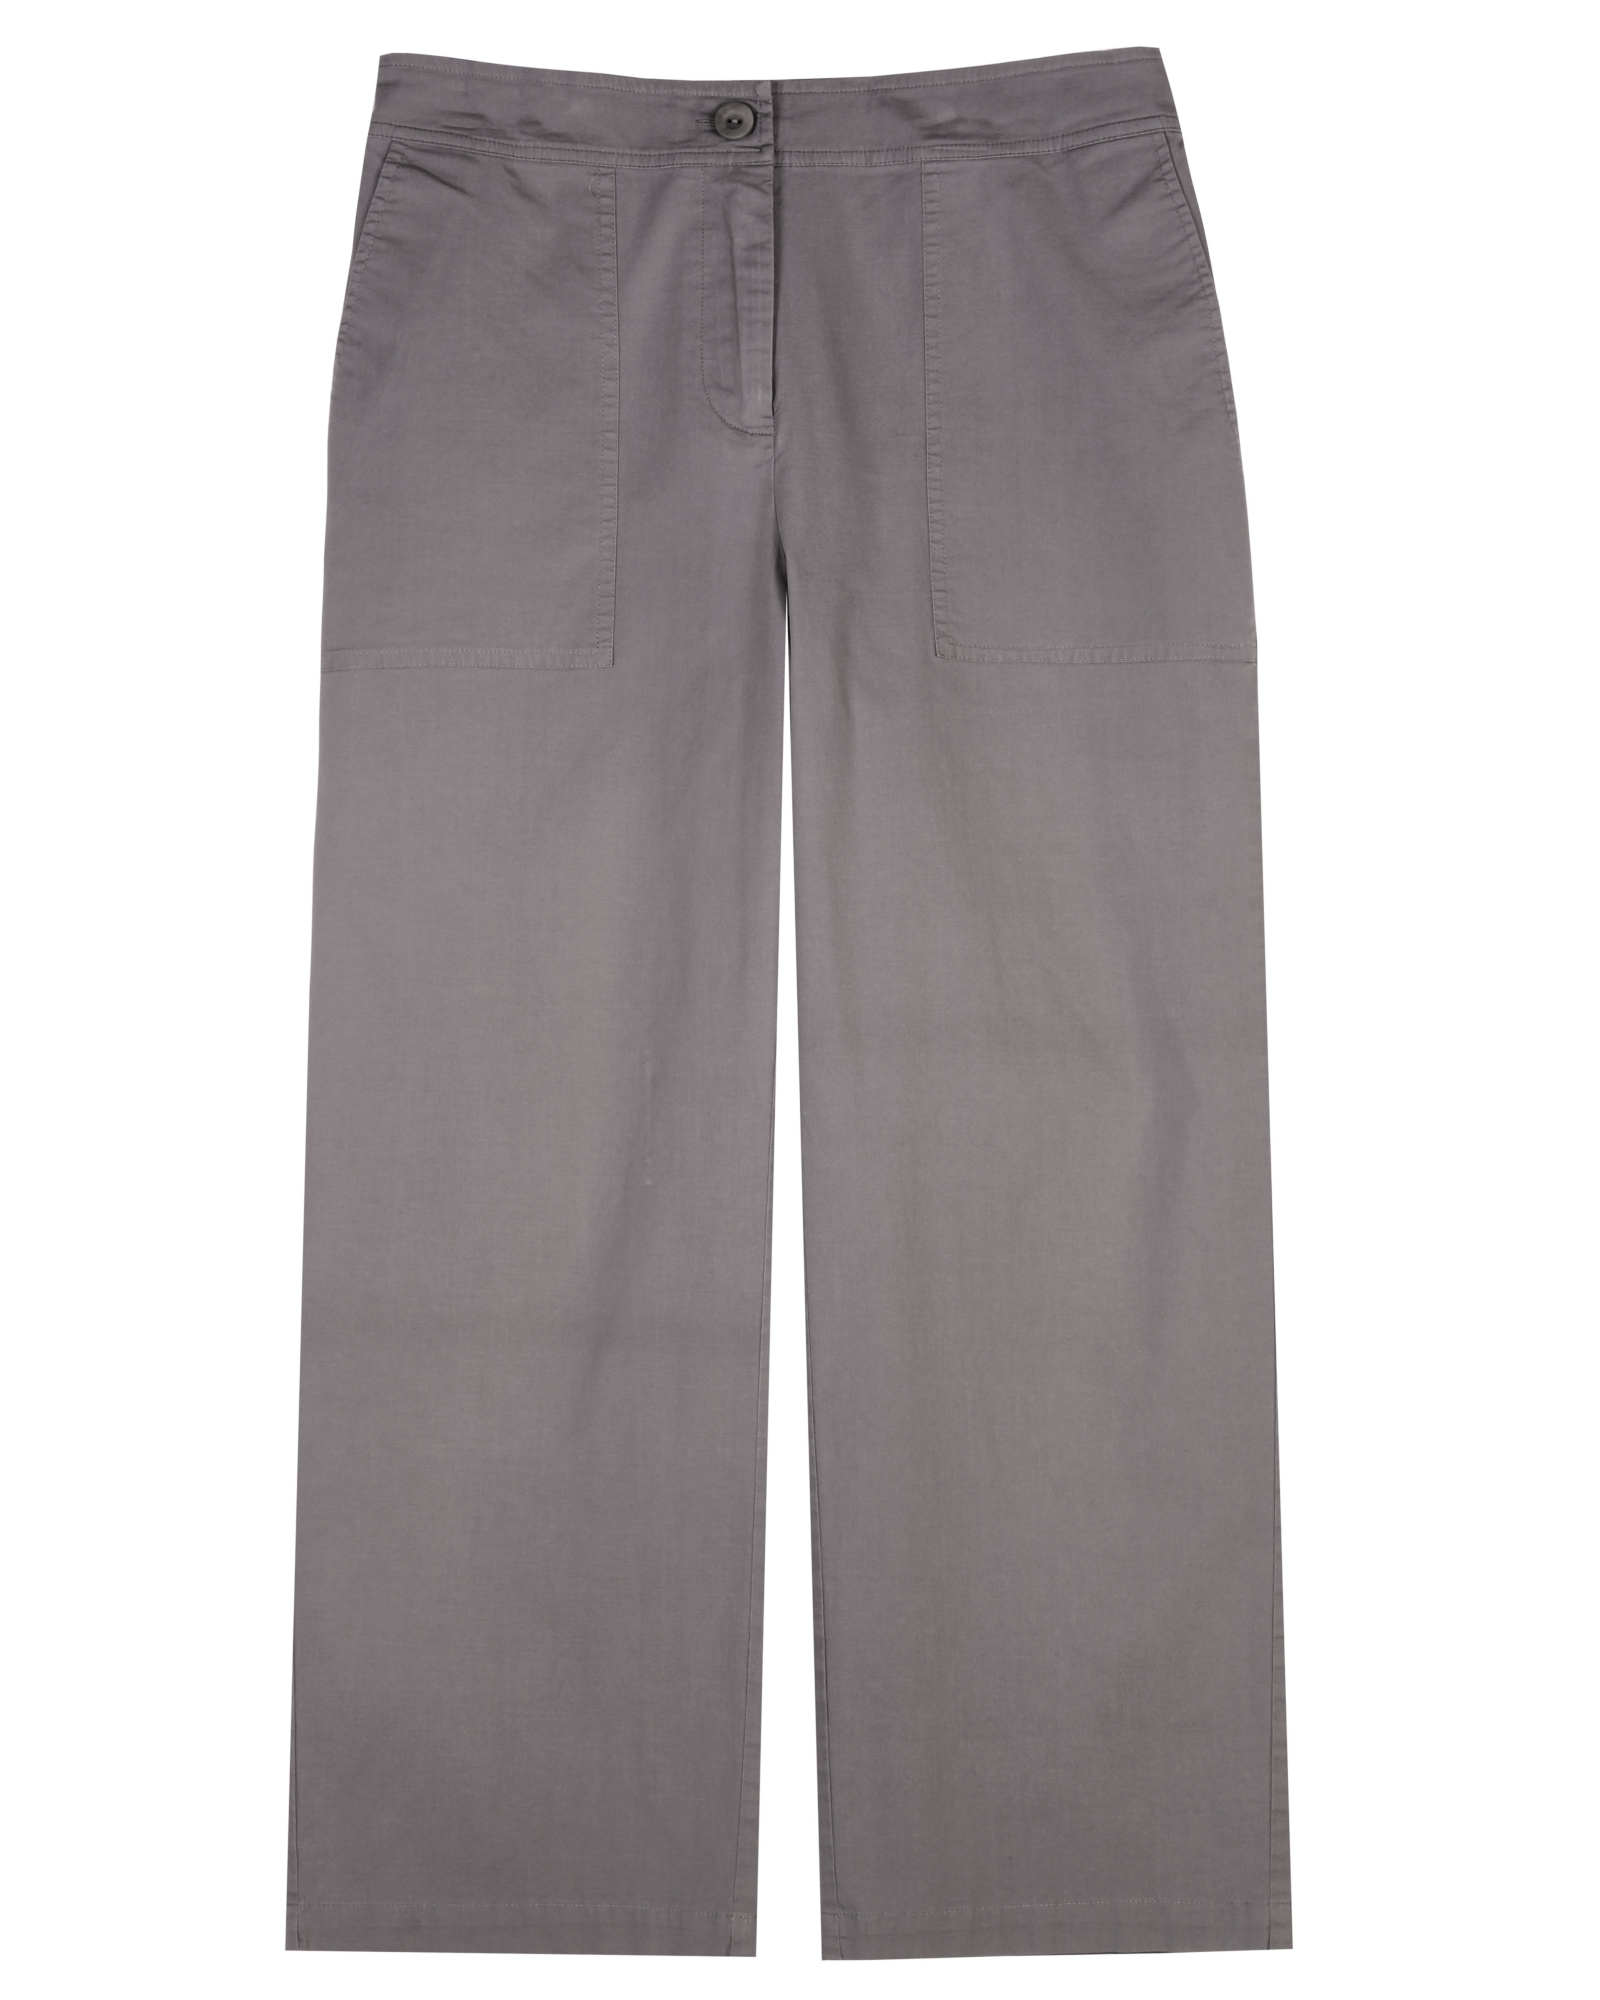 Organic Cotton Stretch Poplin Pant